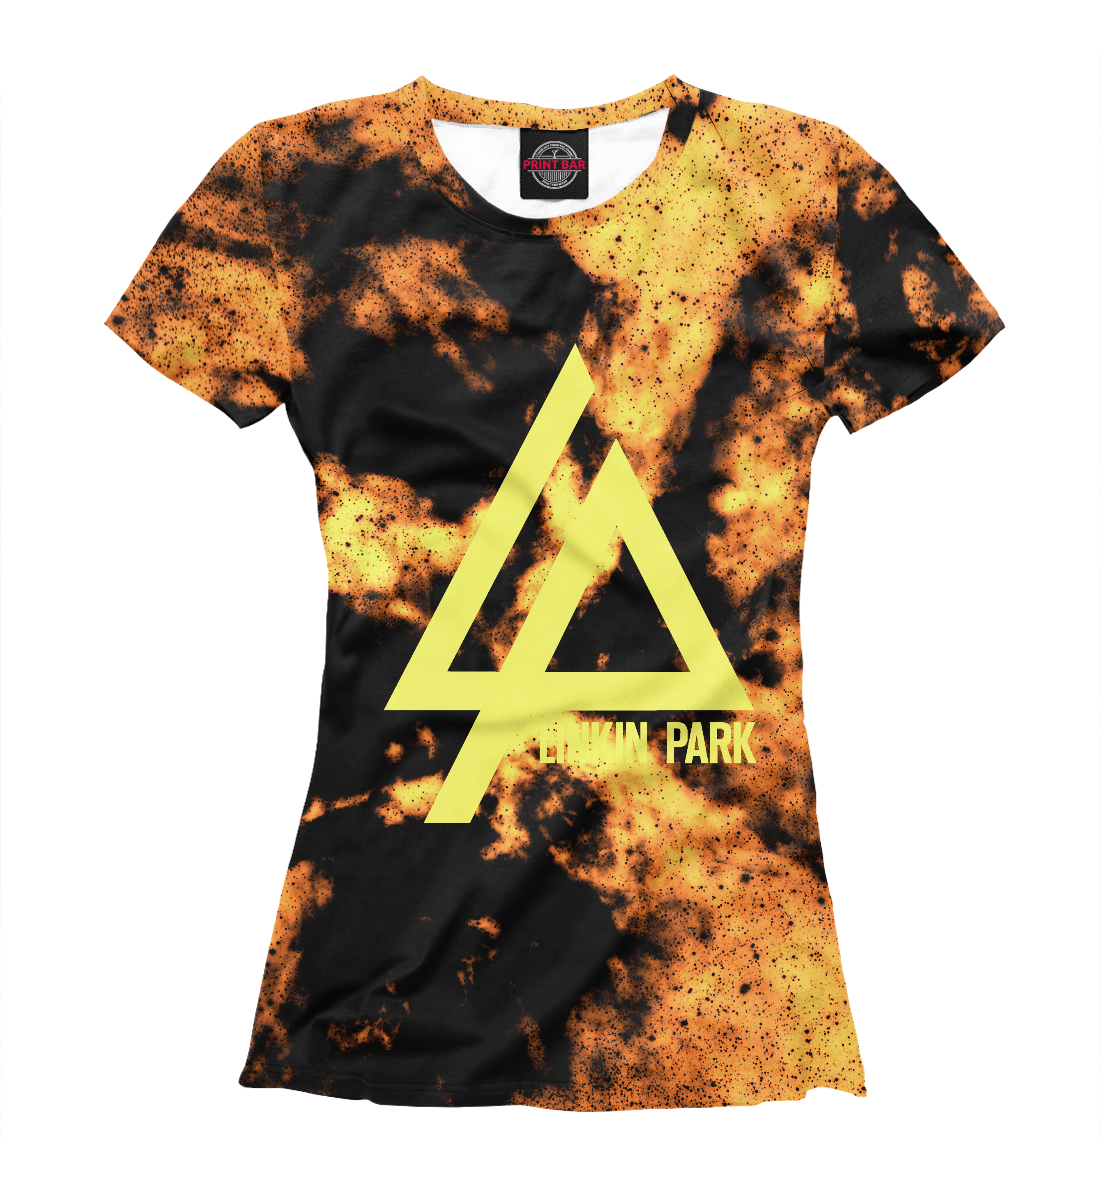 Купить Linkin Park Orange&Black collection, Printbar, Футболки, LIN-519169-fut-1